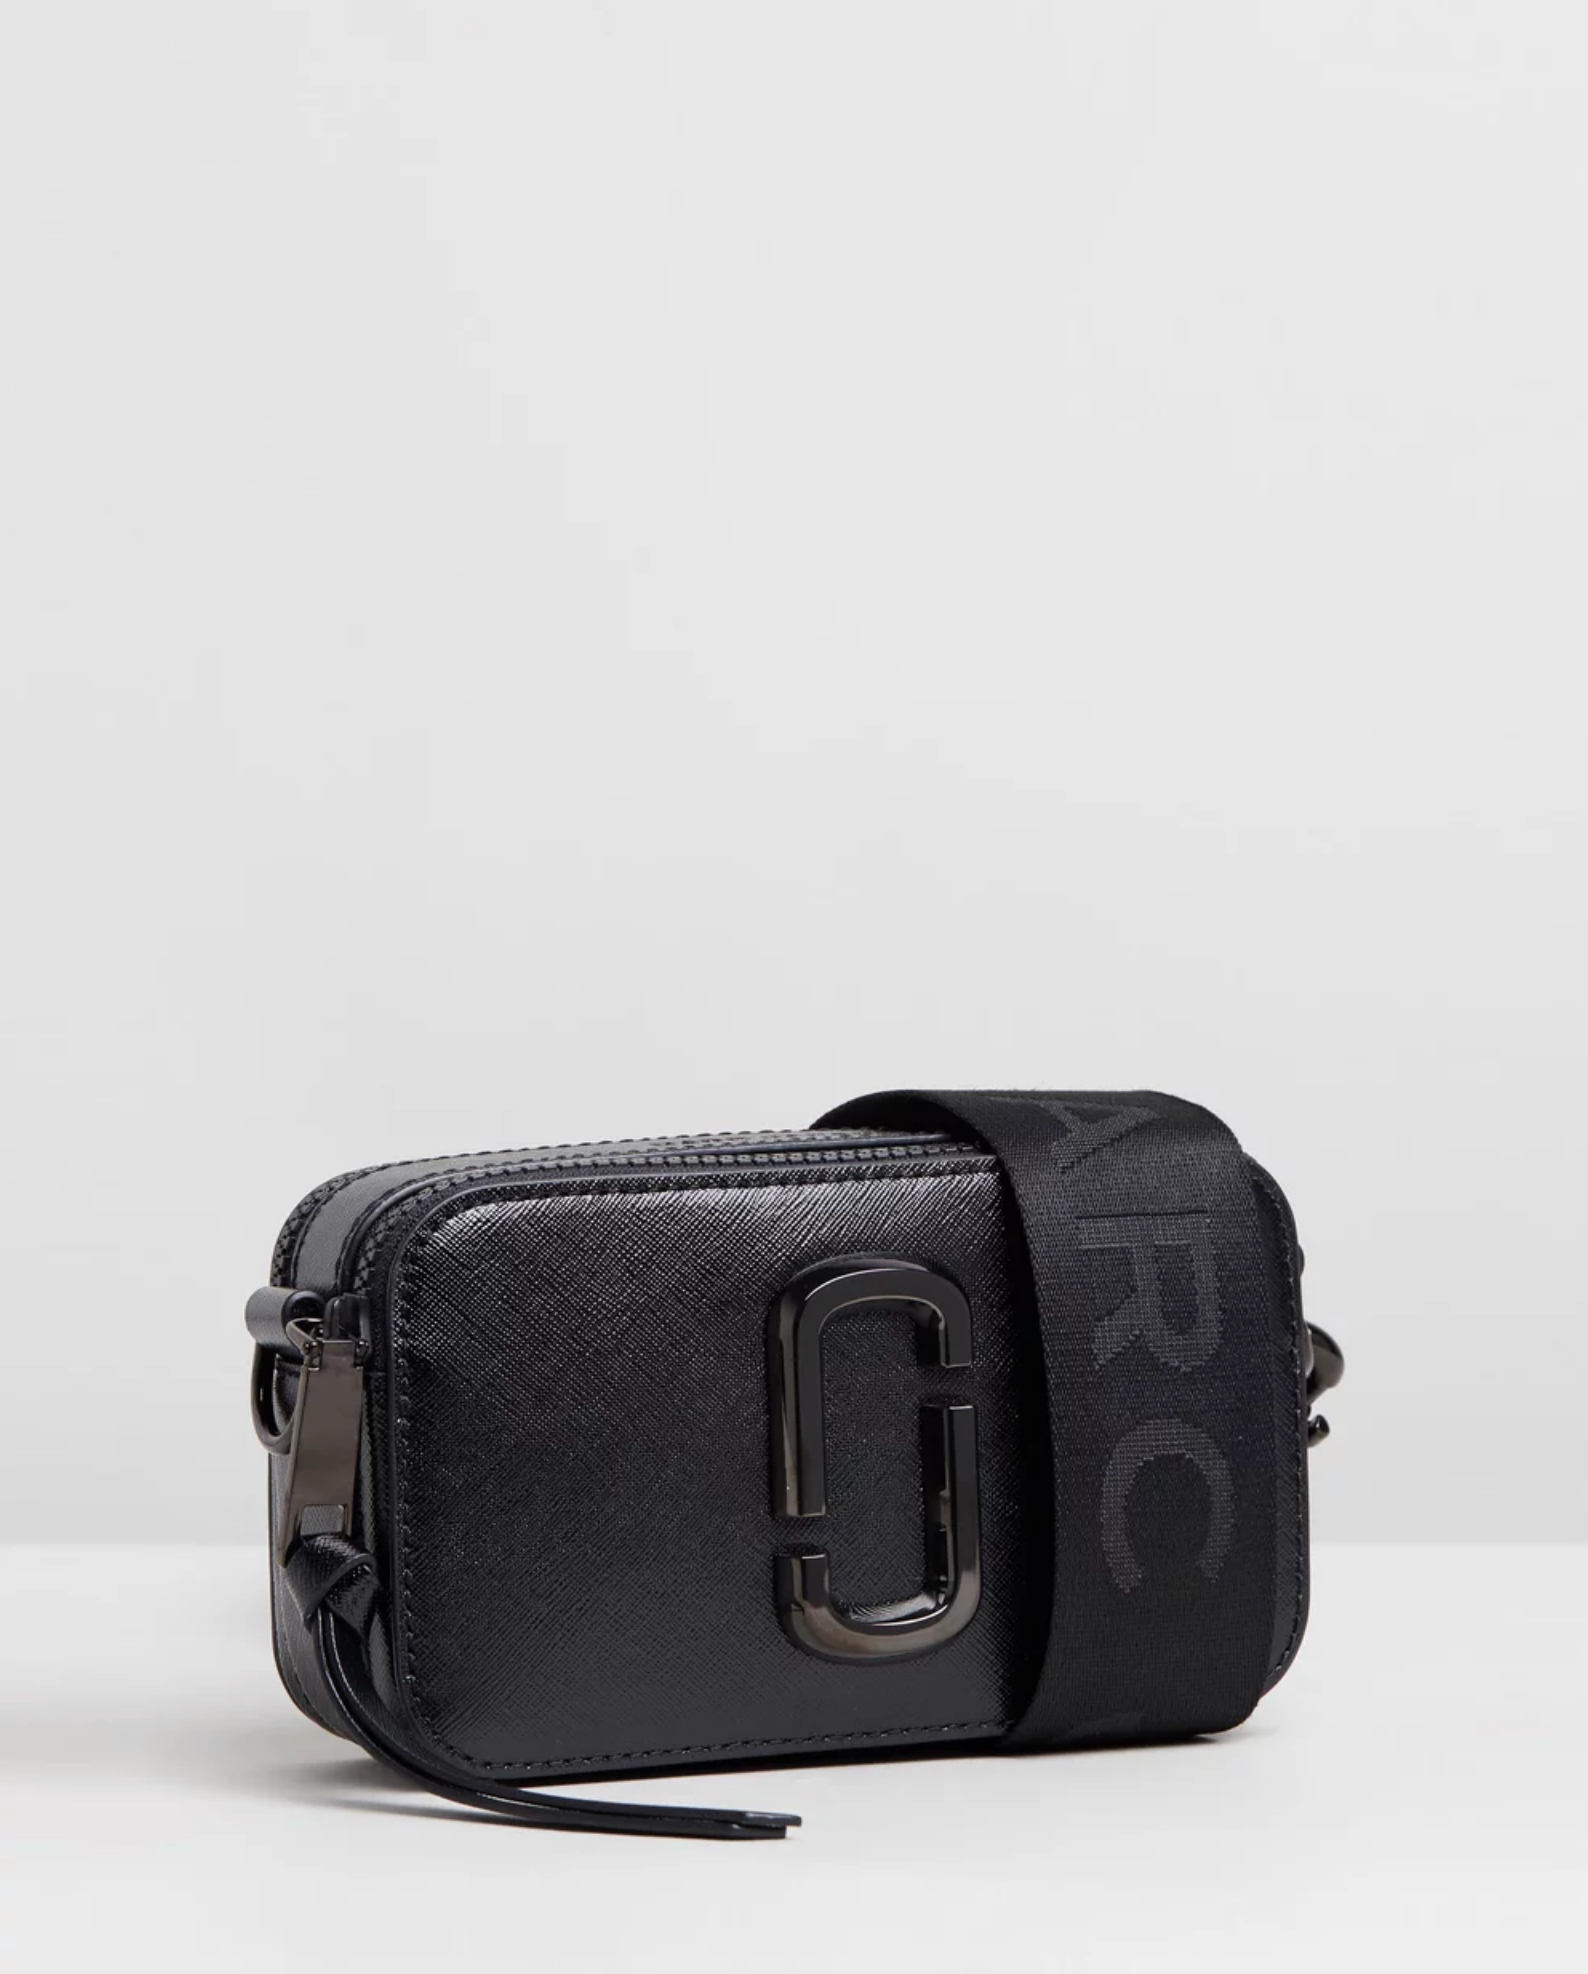 Marc Jacobs - Black cross-body shoulder bag The snapshot